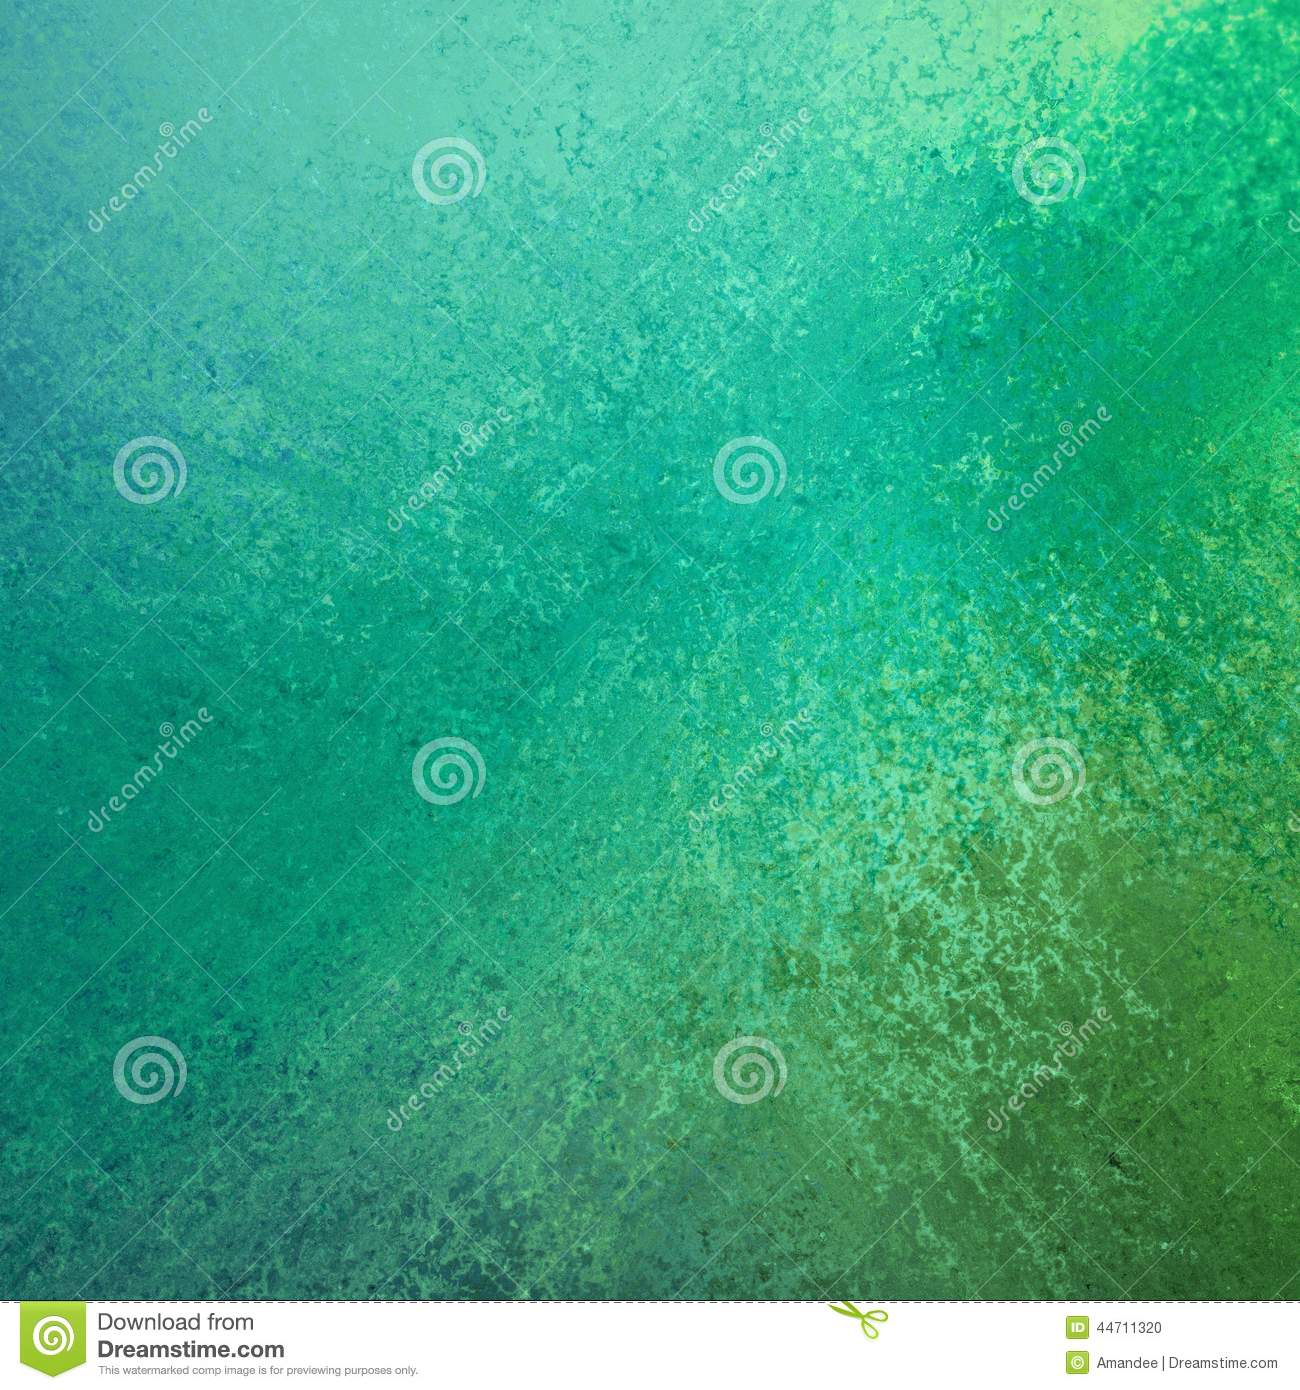 Bluish Green Color Abstract green and blue color